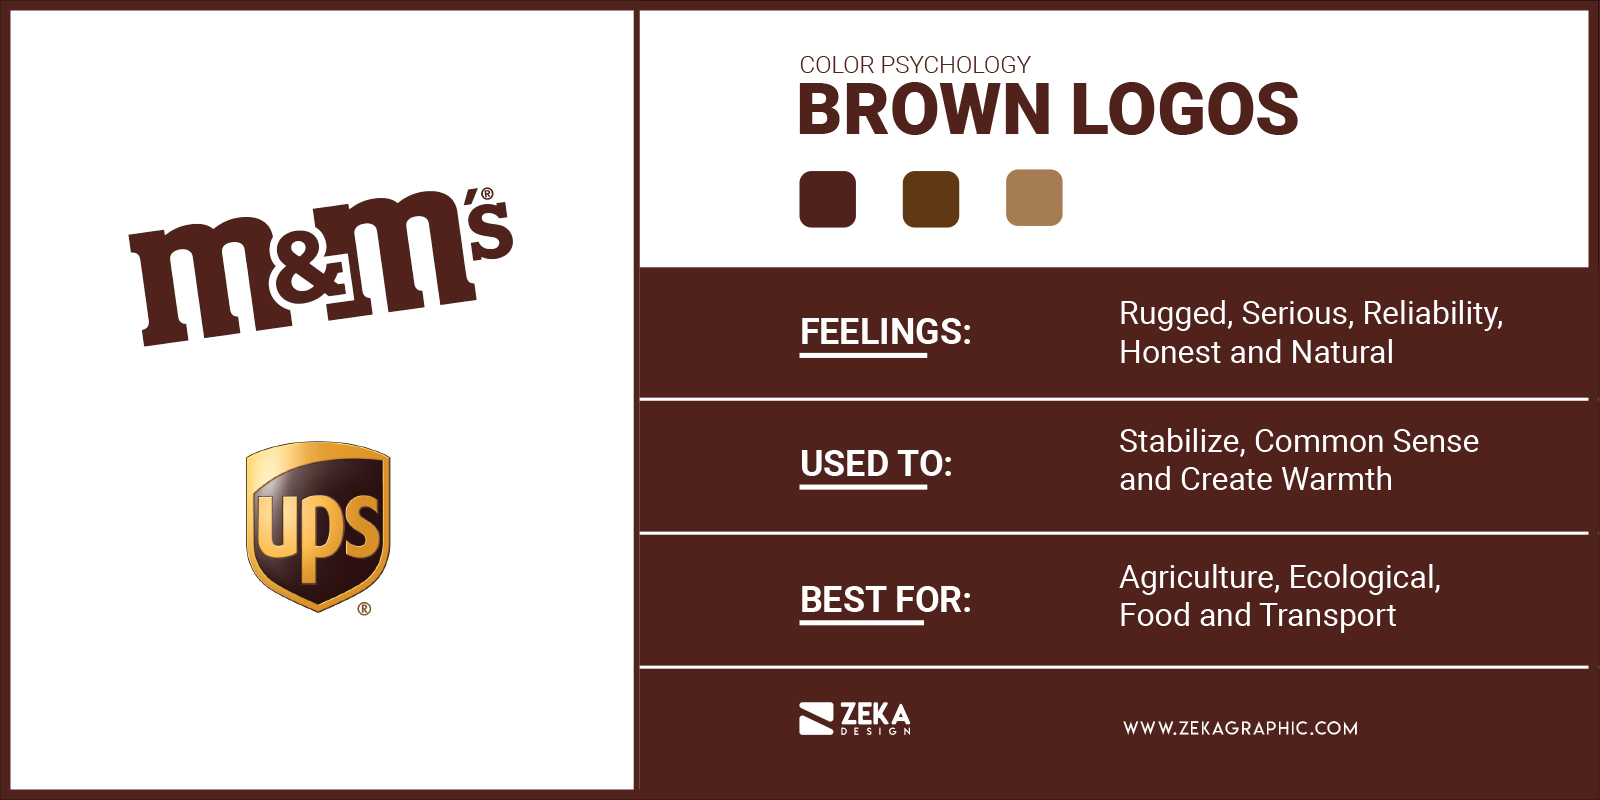 Brown Logos Meaning in Graphic Design